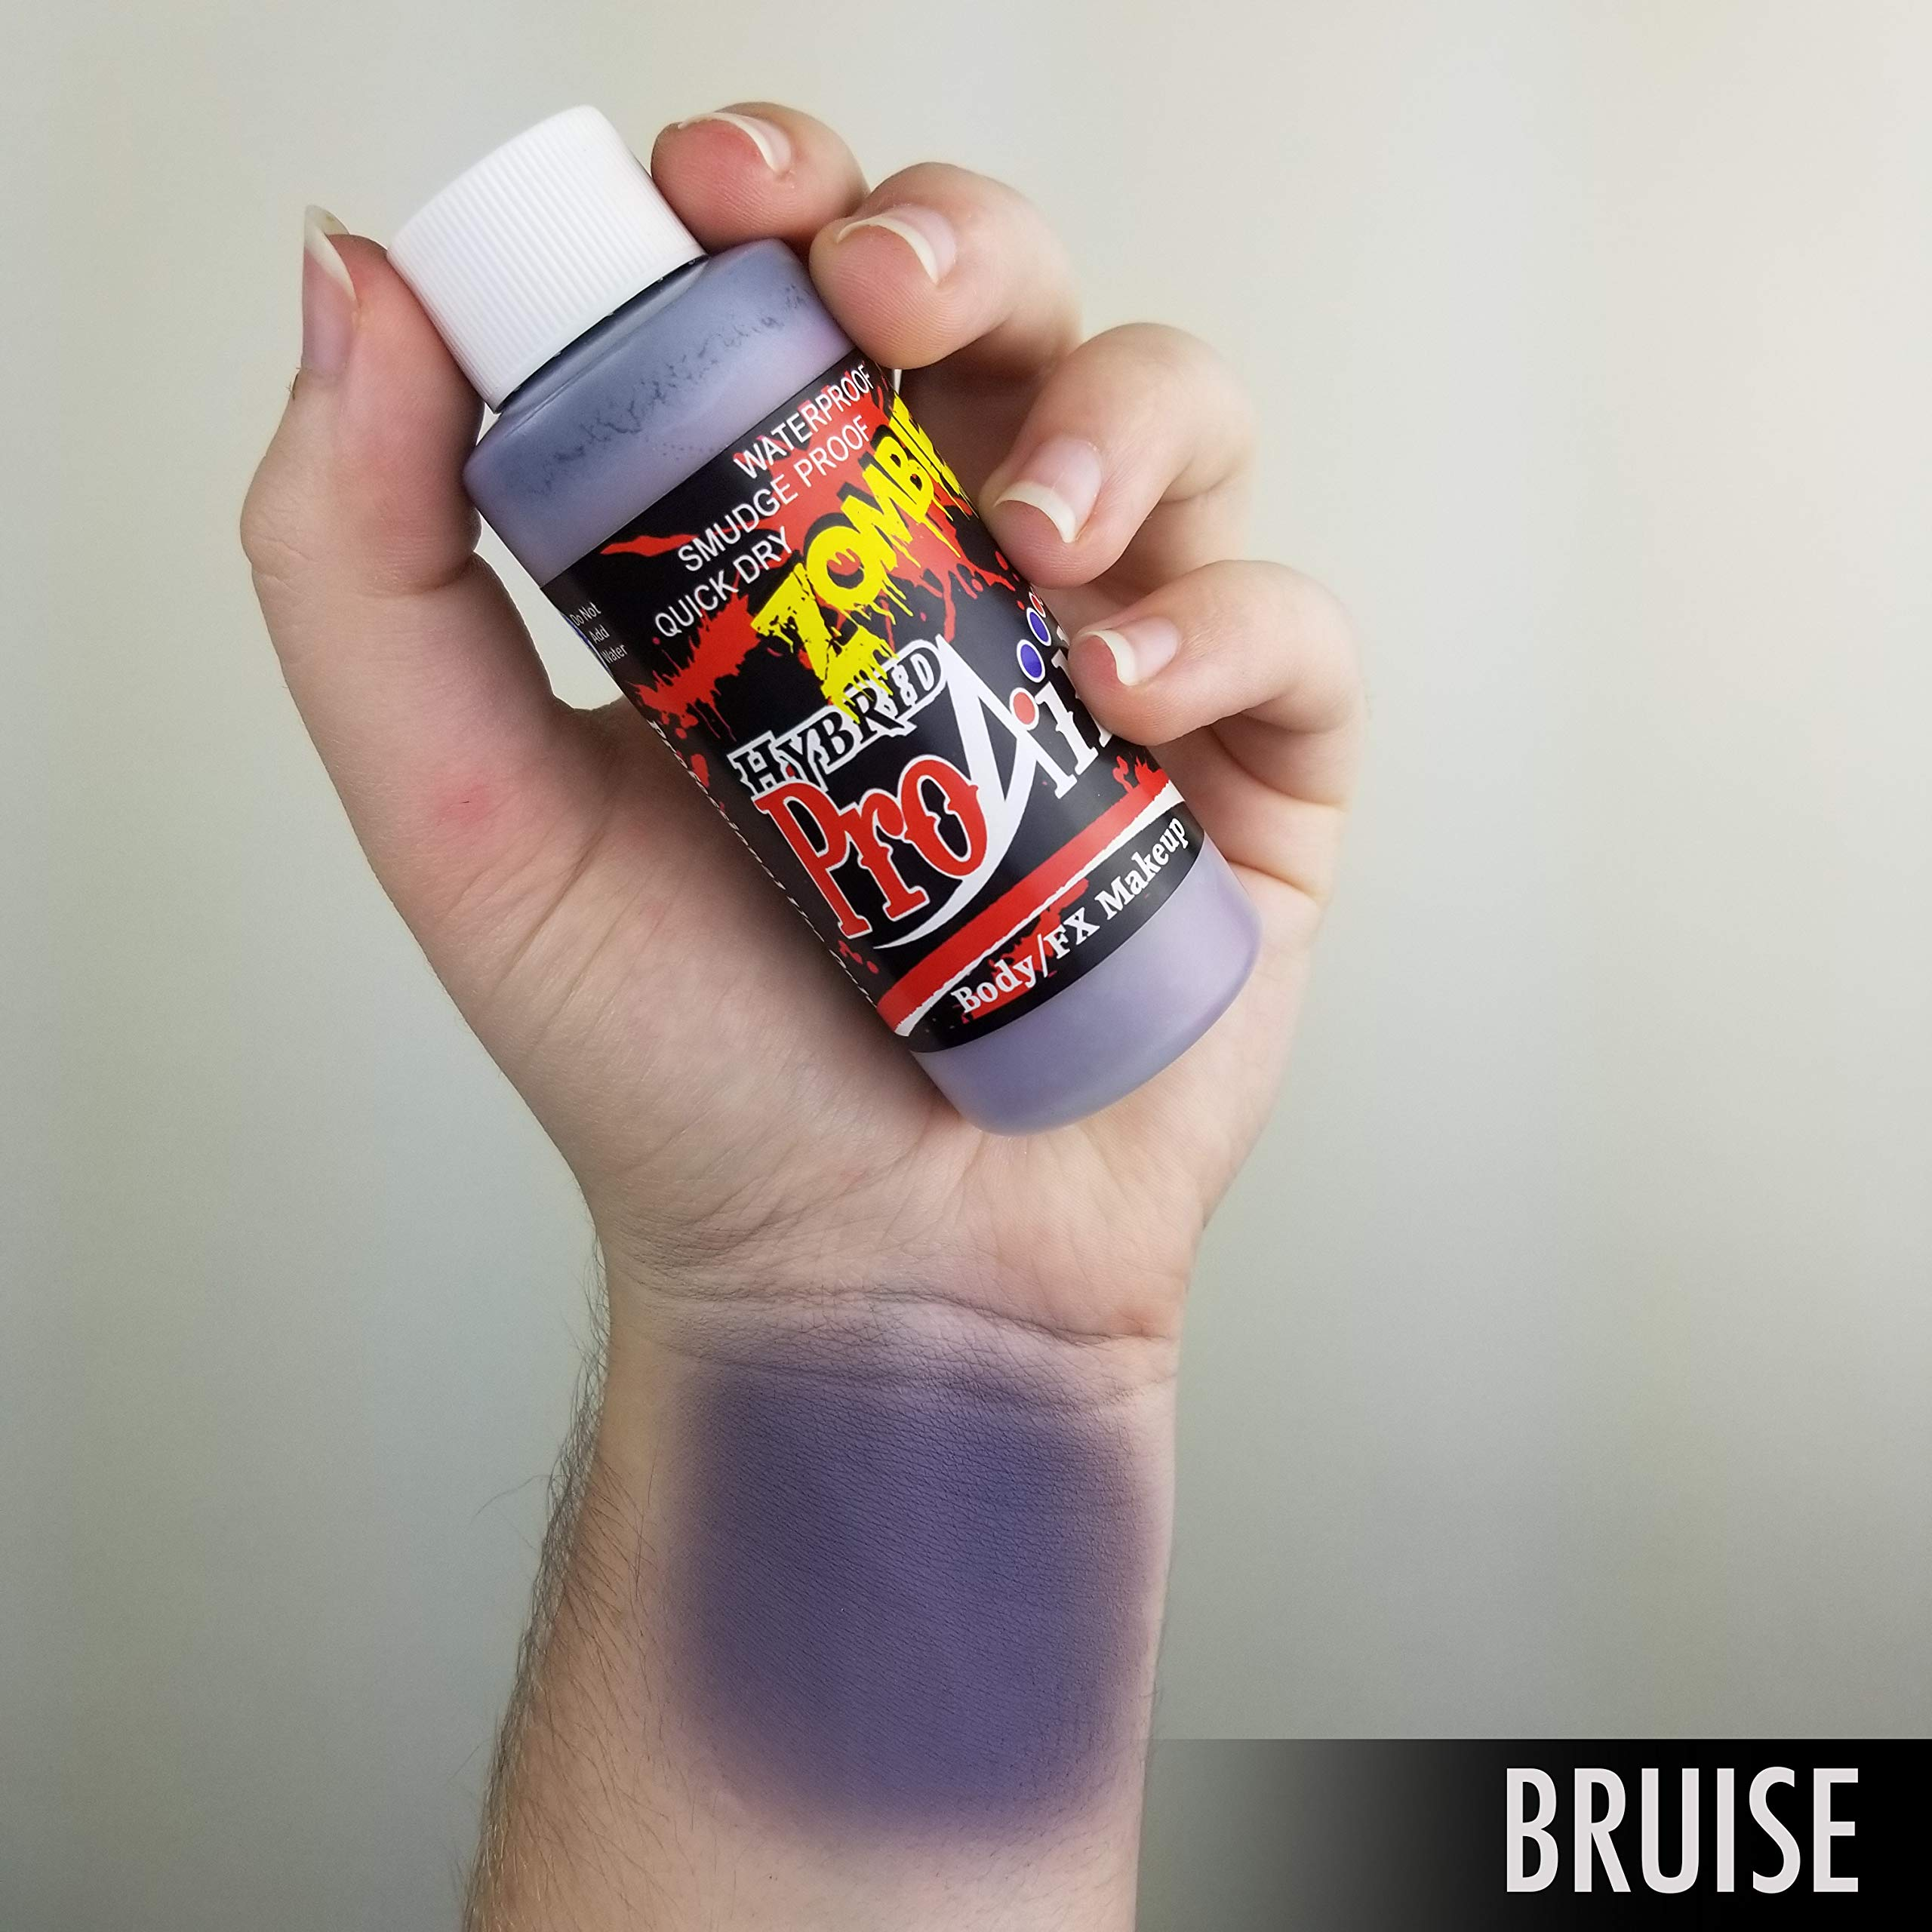 Face Painting Makeup - ProAiir Waterproof Makeup - Third Set of 6 Ghoulish Zombie Colors - 1 oz (30ml) by ShowOffs Body Art (Image #7)